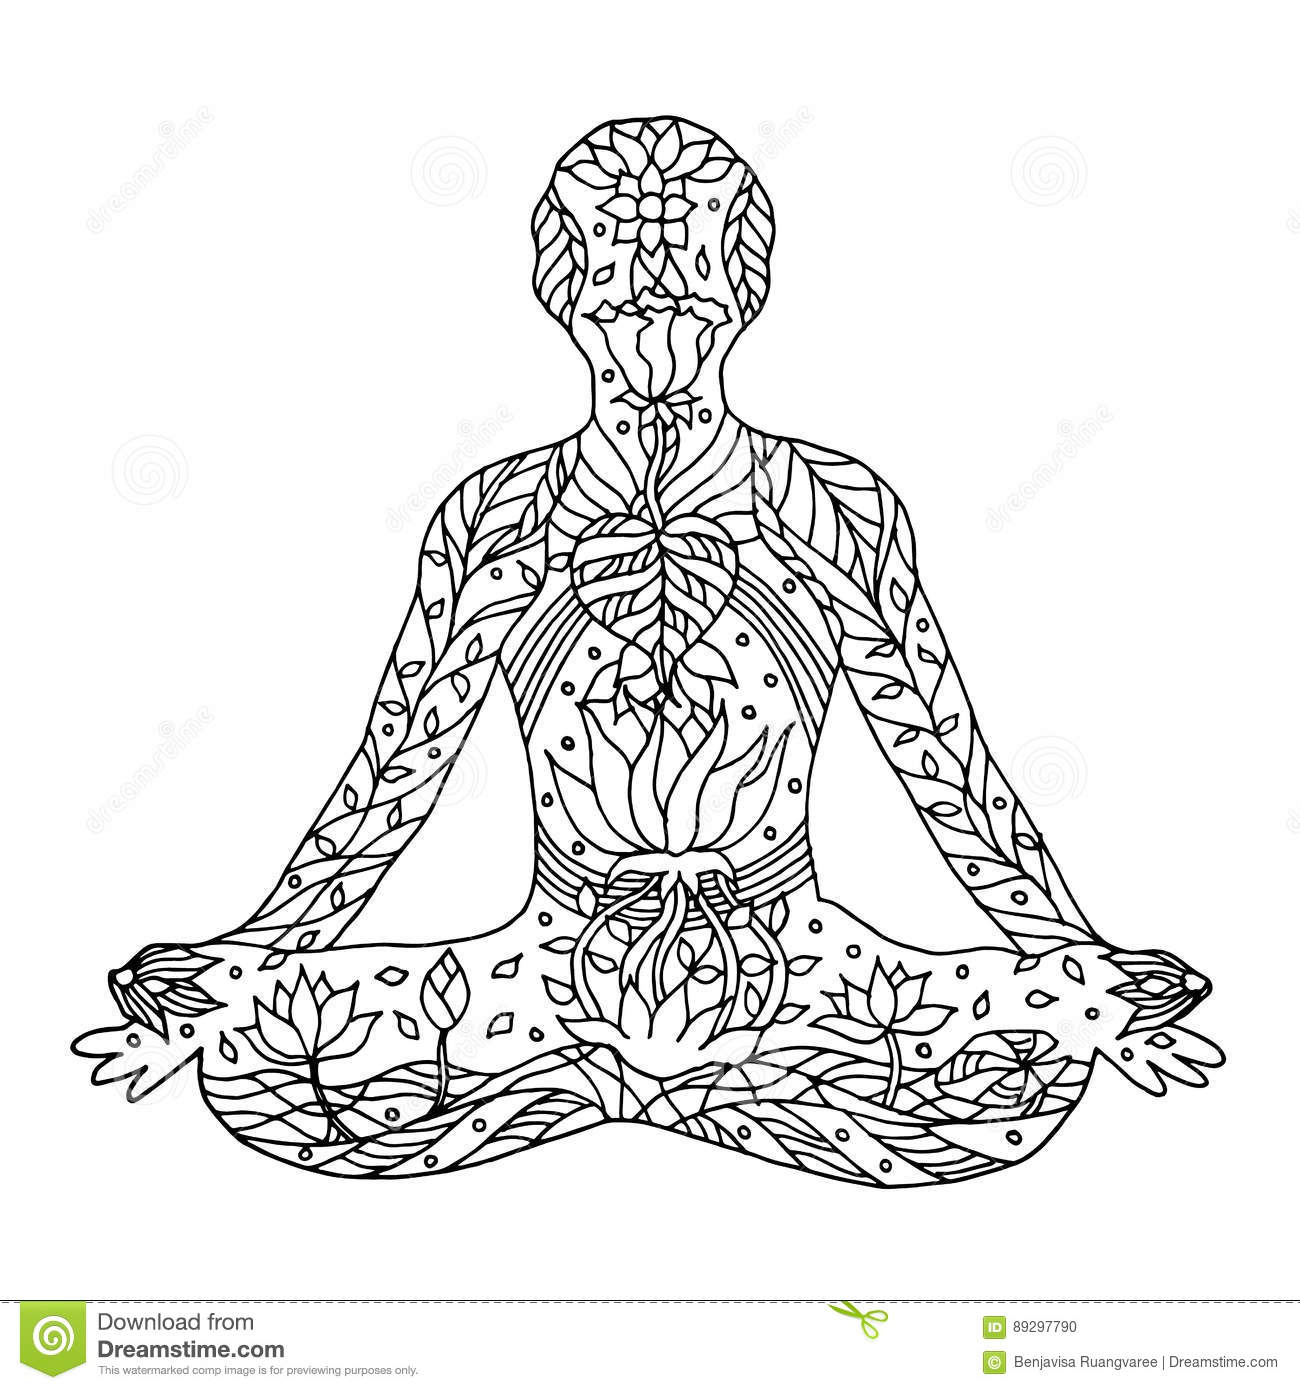 Download Lotus Pose With Mudra Hands Yoga Position Posture Hand Drawn Stock Vector